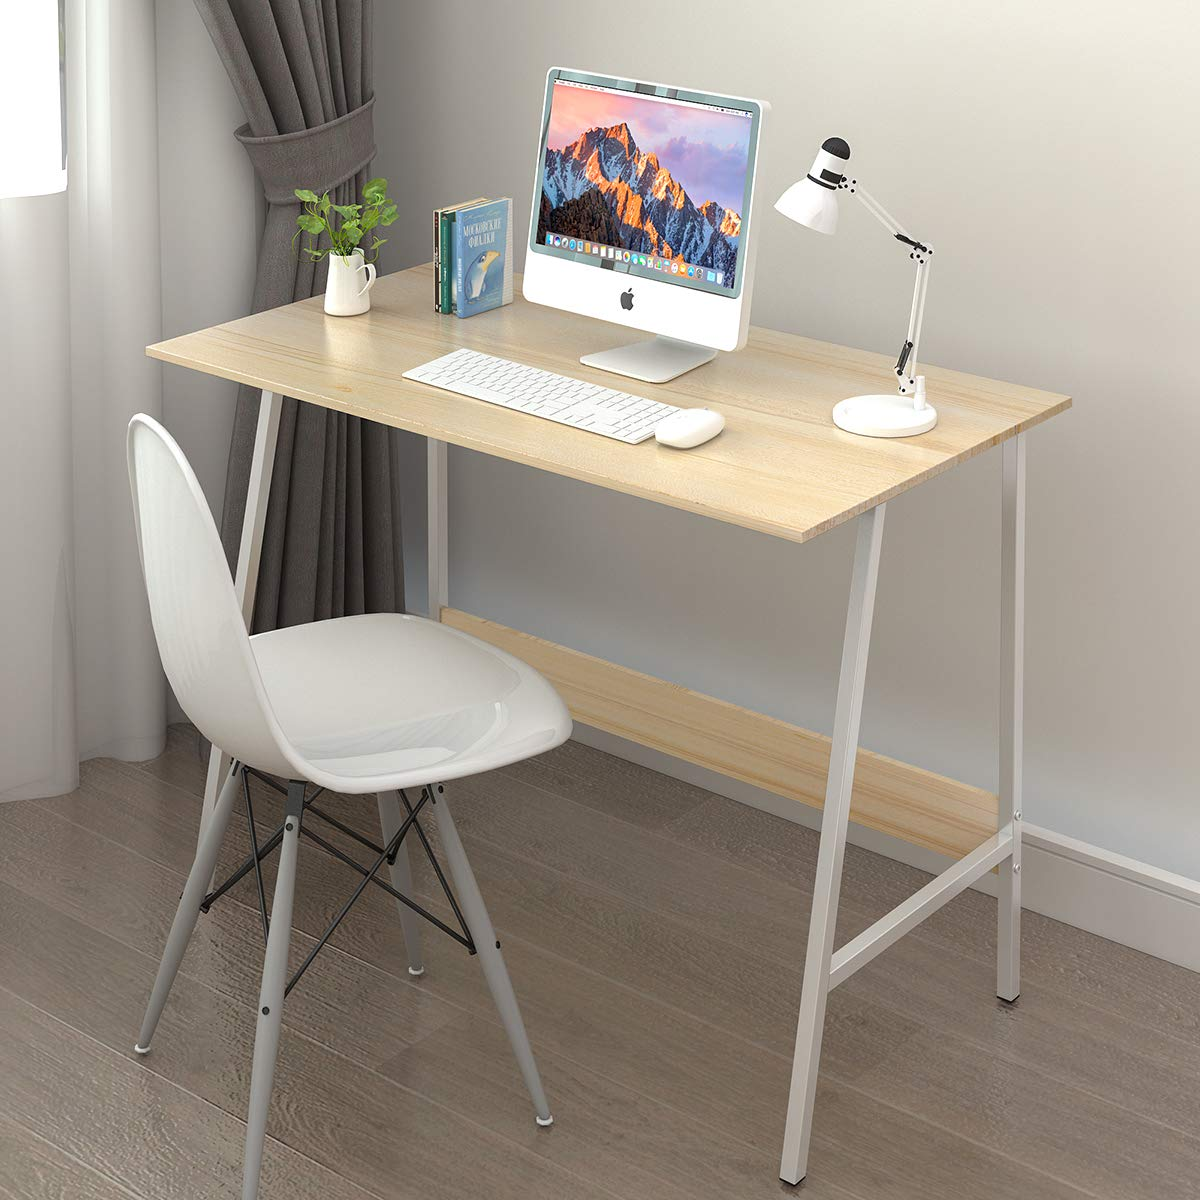 WLIVE Computer Writing Desk, Study Desk Notebook Desk with Durable Wood and Metal Frame for Home Office